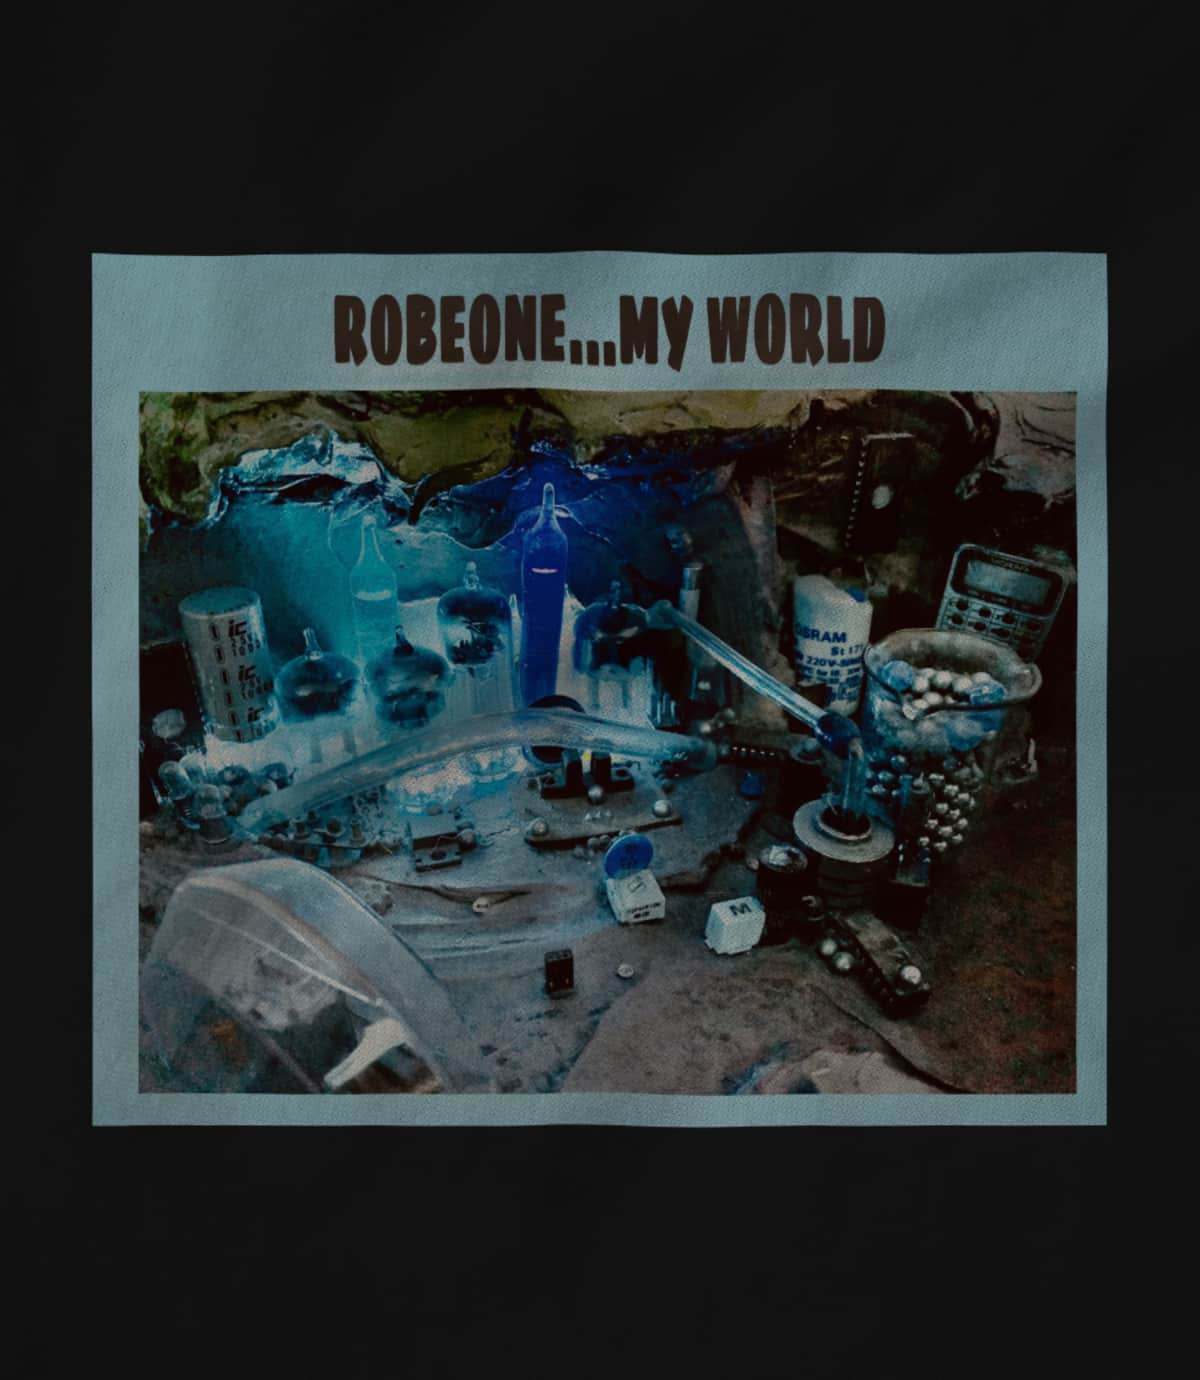 Robeone my world 1596918139